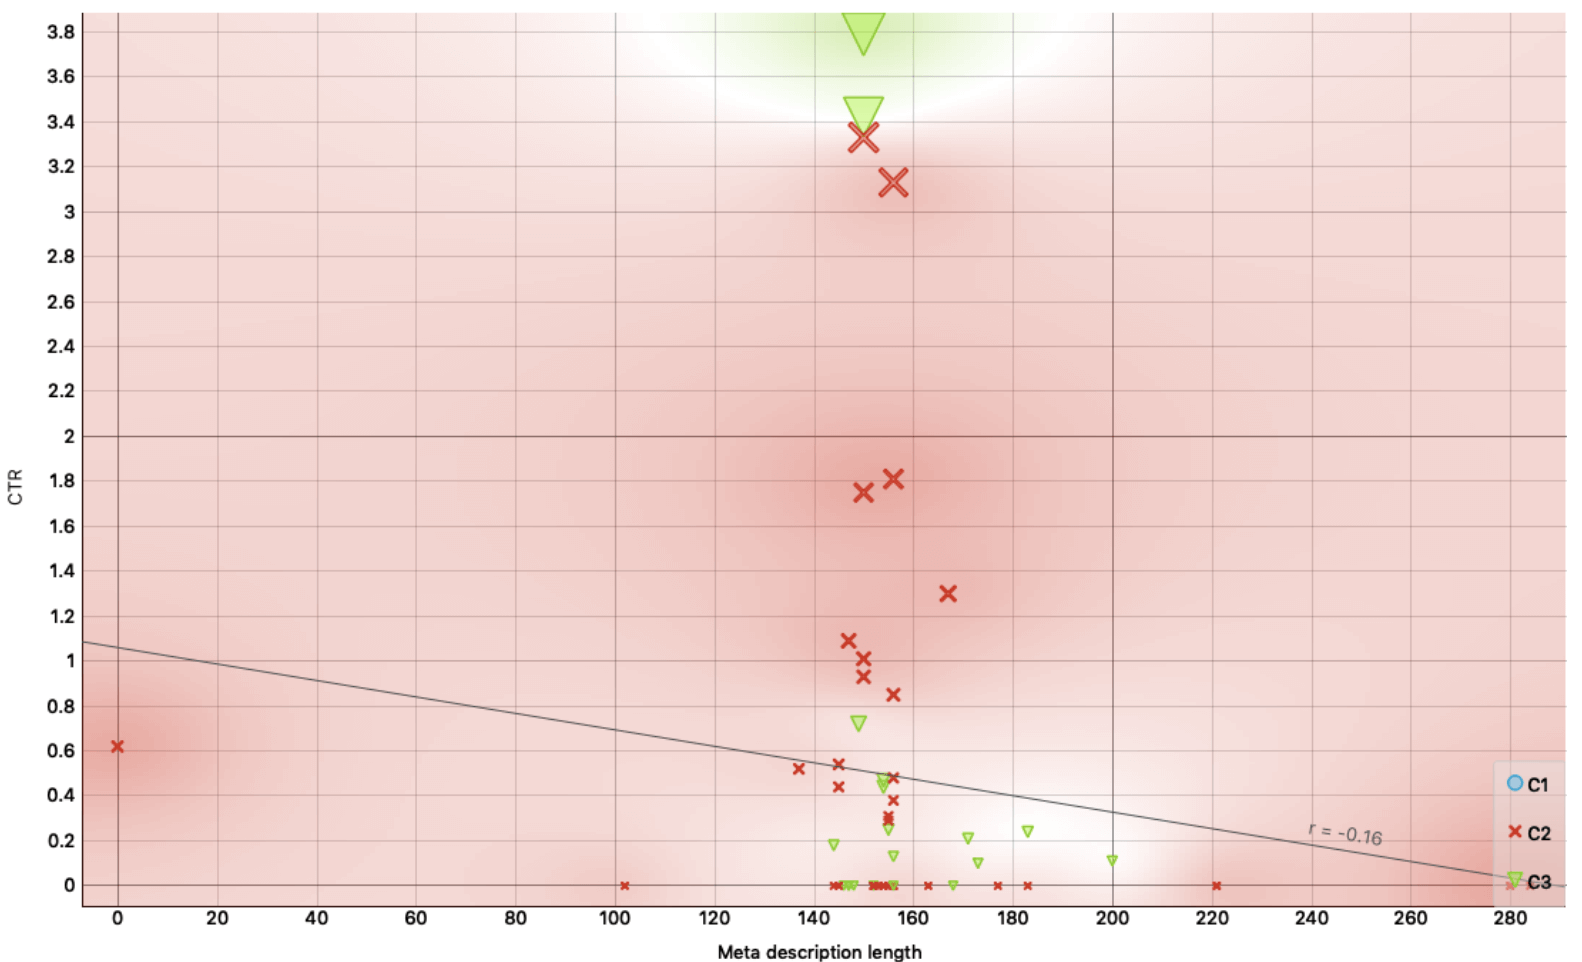 Scatter Plot #4 - CTR vs Meta Description Length